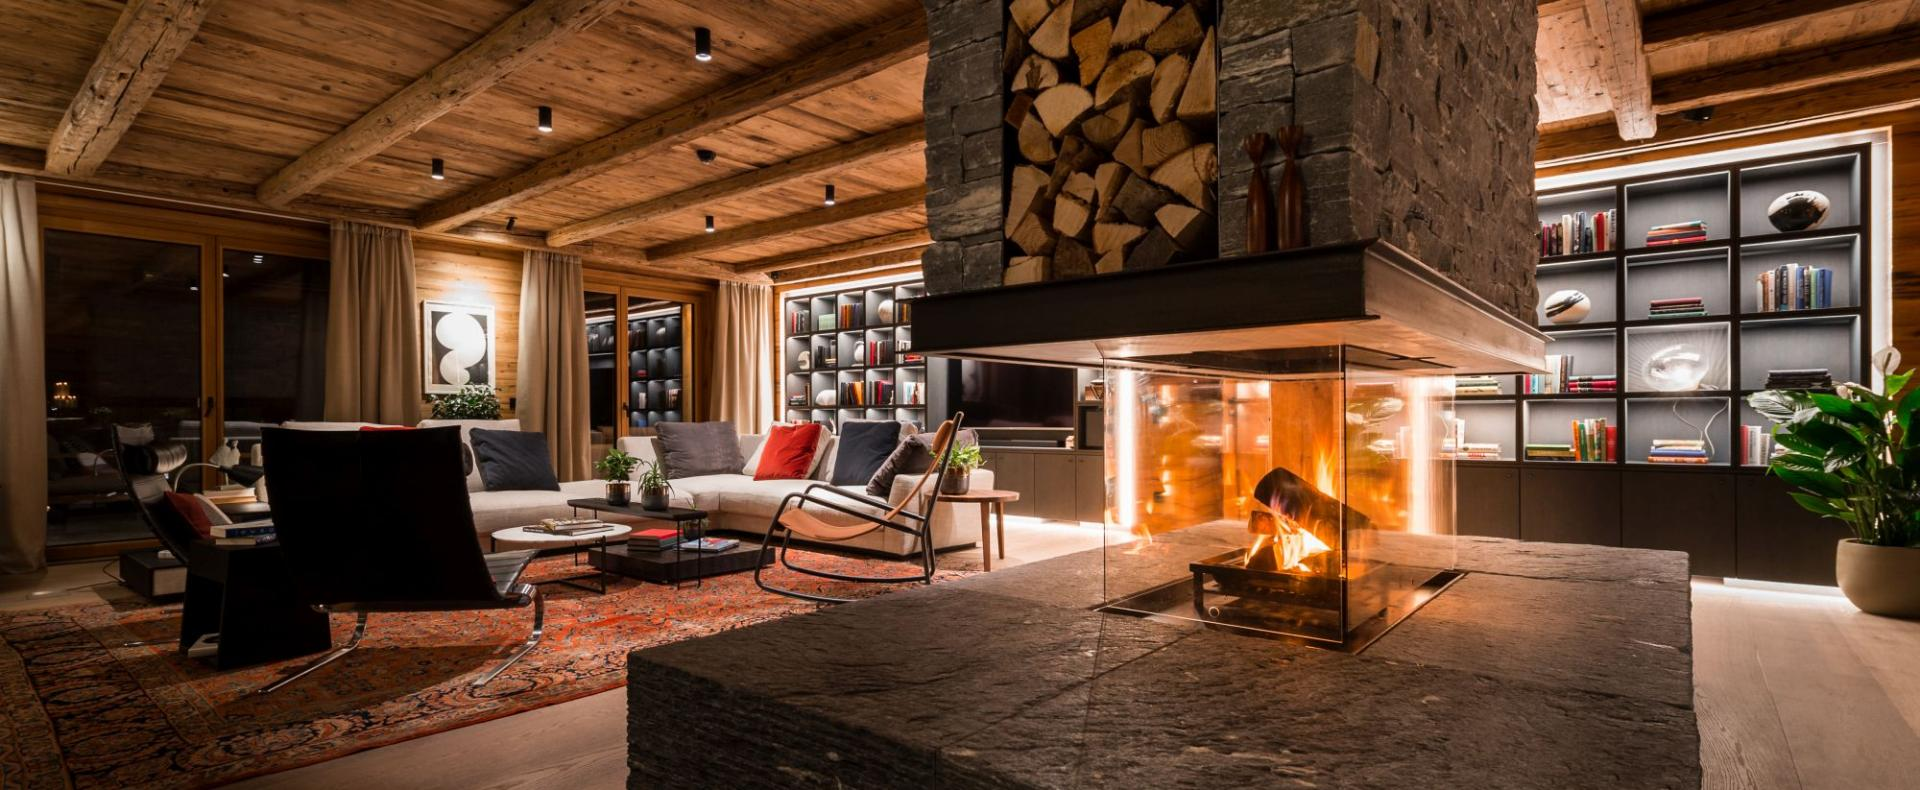 Open-Fire-Arula-Chalet-Lech-Ultimate-Luxury-Chalets-UltraVilla